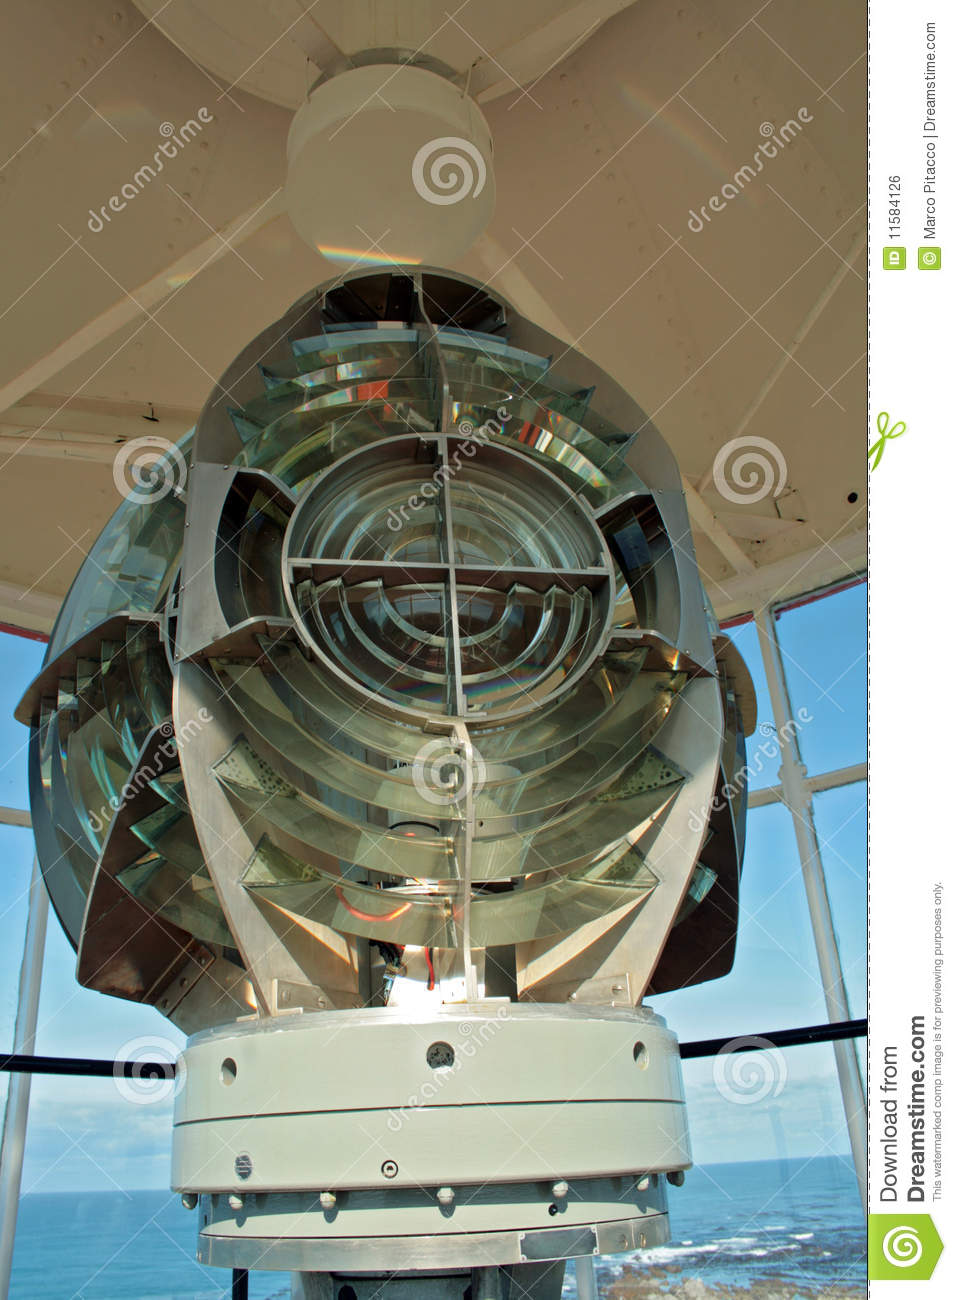 Cottage lighthouse lamp 3 colors - Lighthouse Lamp Royalty Free Stock Image Image